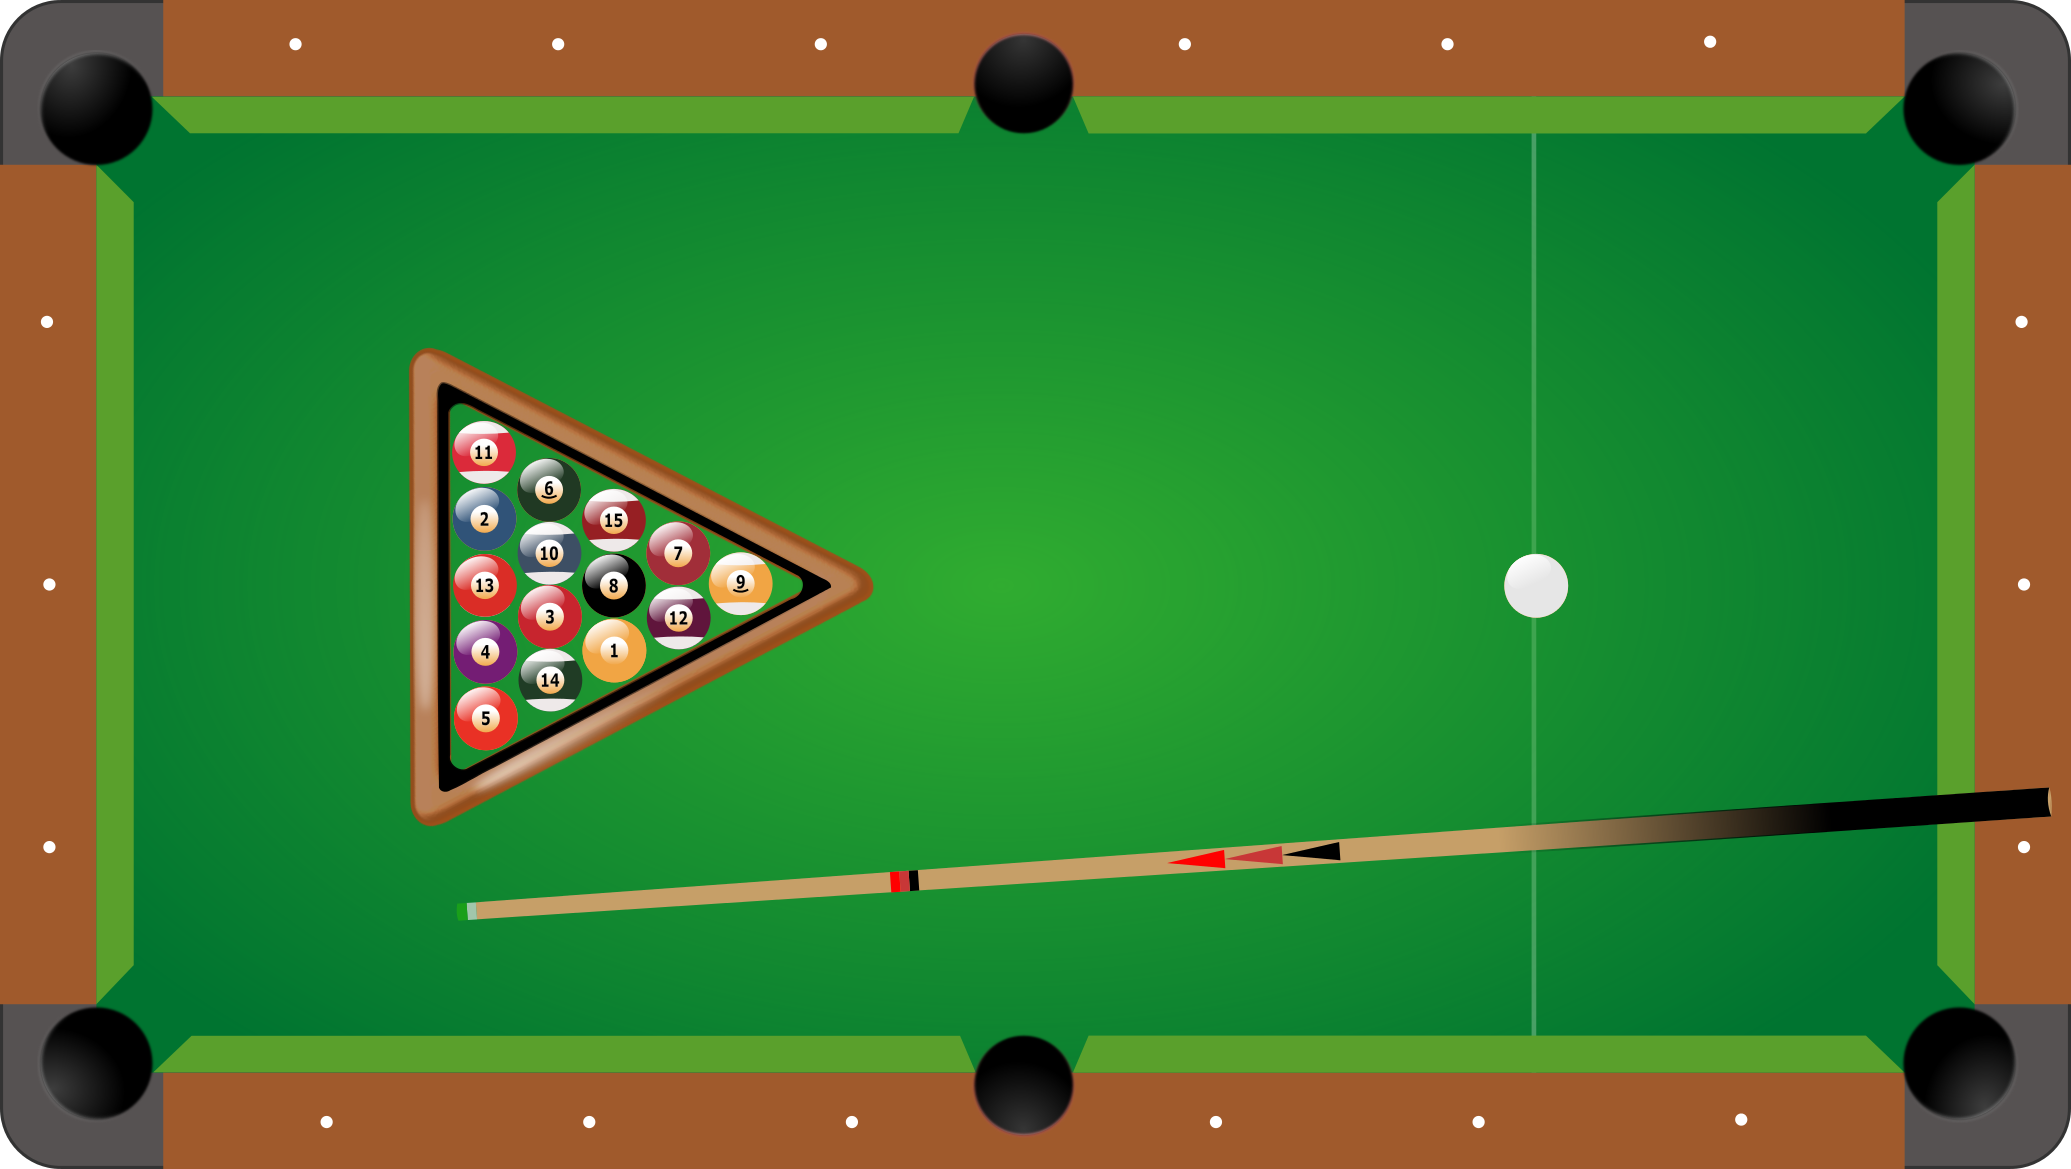 Ball Pool Assets OpenGameArtorg - Sports authority pool table